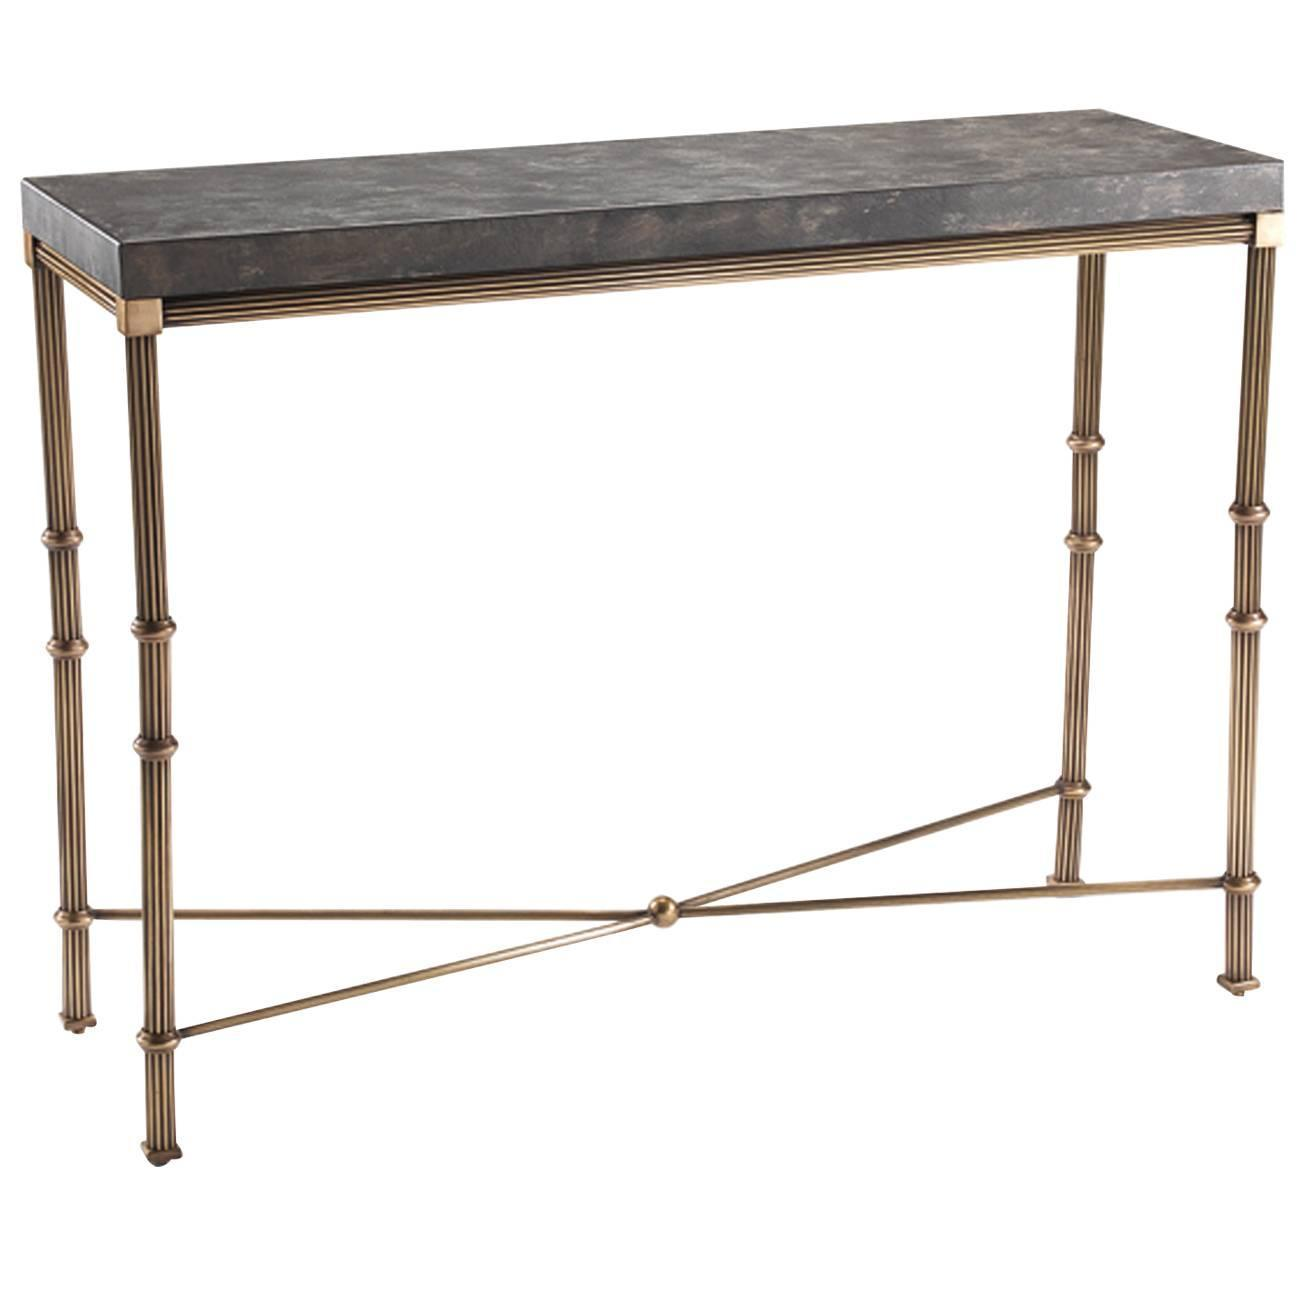 Onde console for sale at 1stdibs for Loft via savona 97